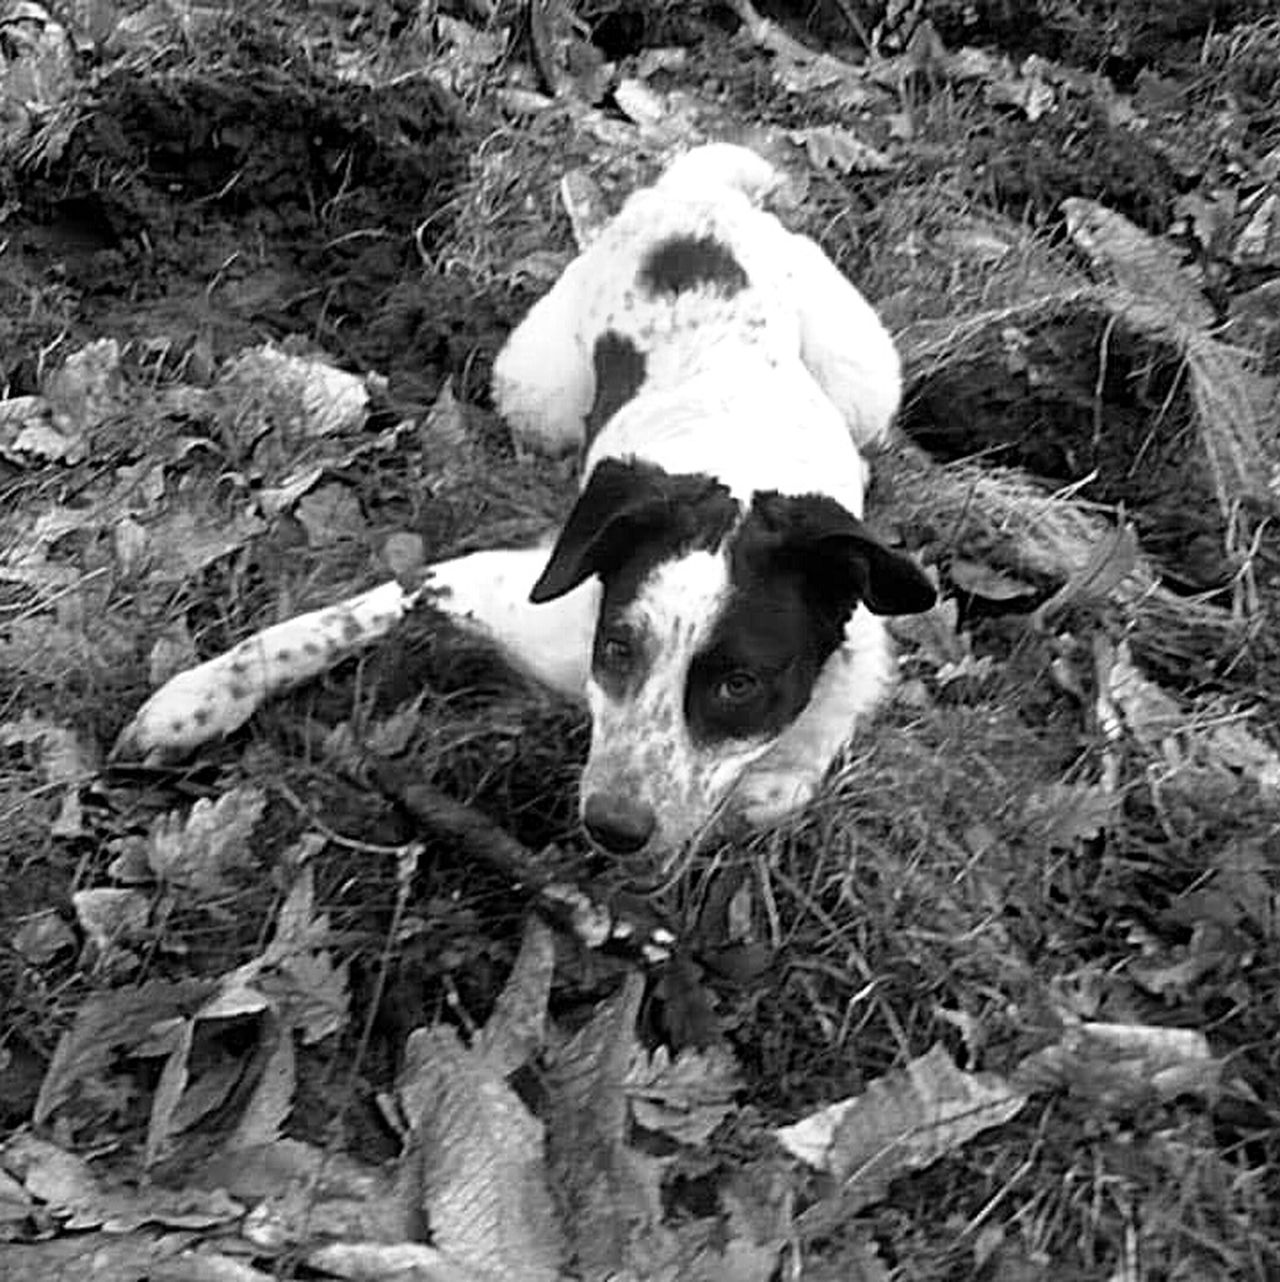 Dog Chien Noir Et Blanc Black And White Popular Photos Popular Tranquil Scene Animal Nose Babydog Animal Themes Chiende Berger Animal Chiens One Animal Domestic Animals No People Scenery Photography Selective Focus